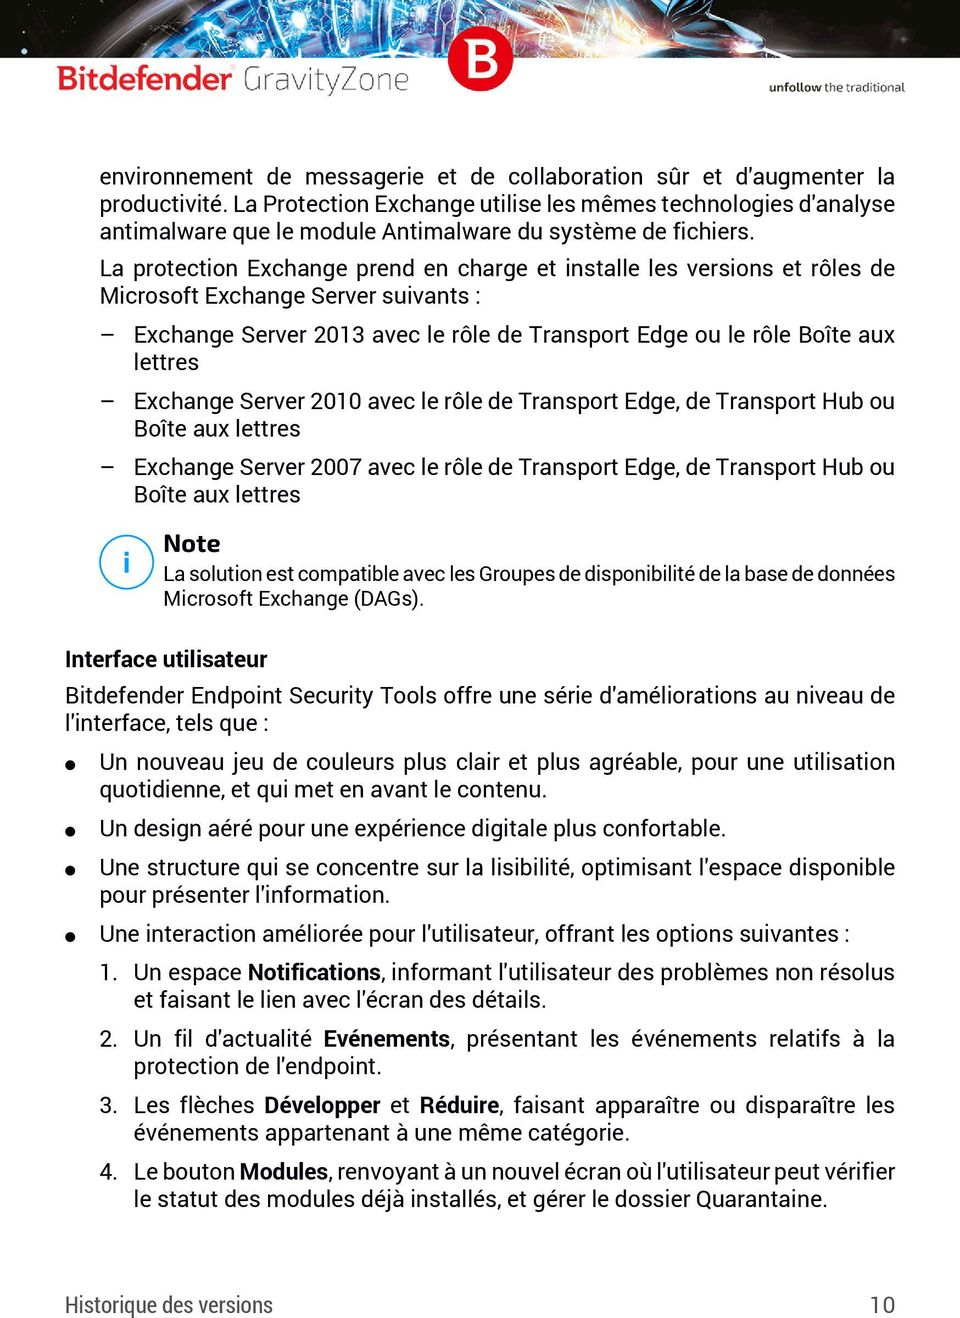 La protection Exchange prend en charge et installe les versions et rôles de Microsoft Exchange Server suivants : Exchange Server 2013 avec le rôle de Transport Edge ou le rôle Boîte aux lettres